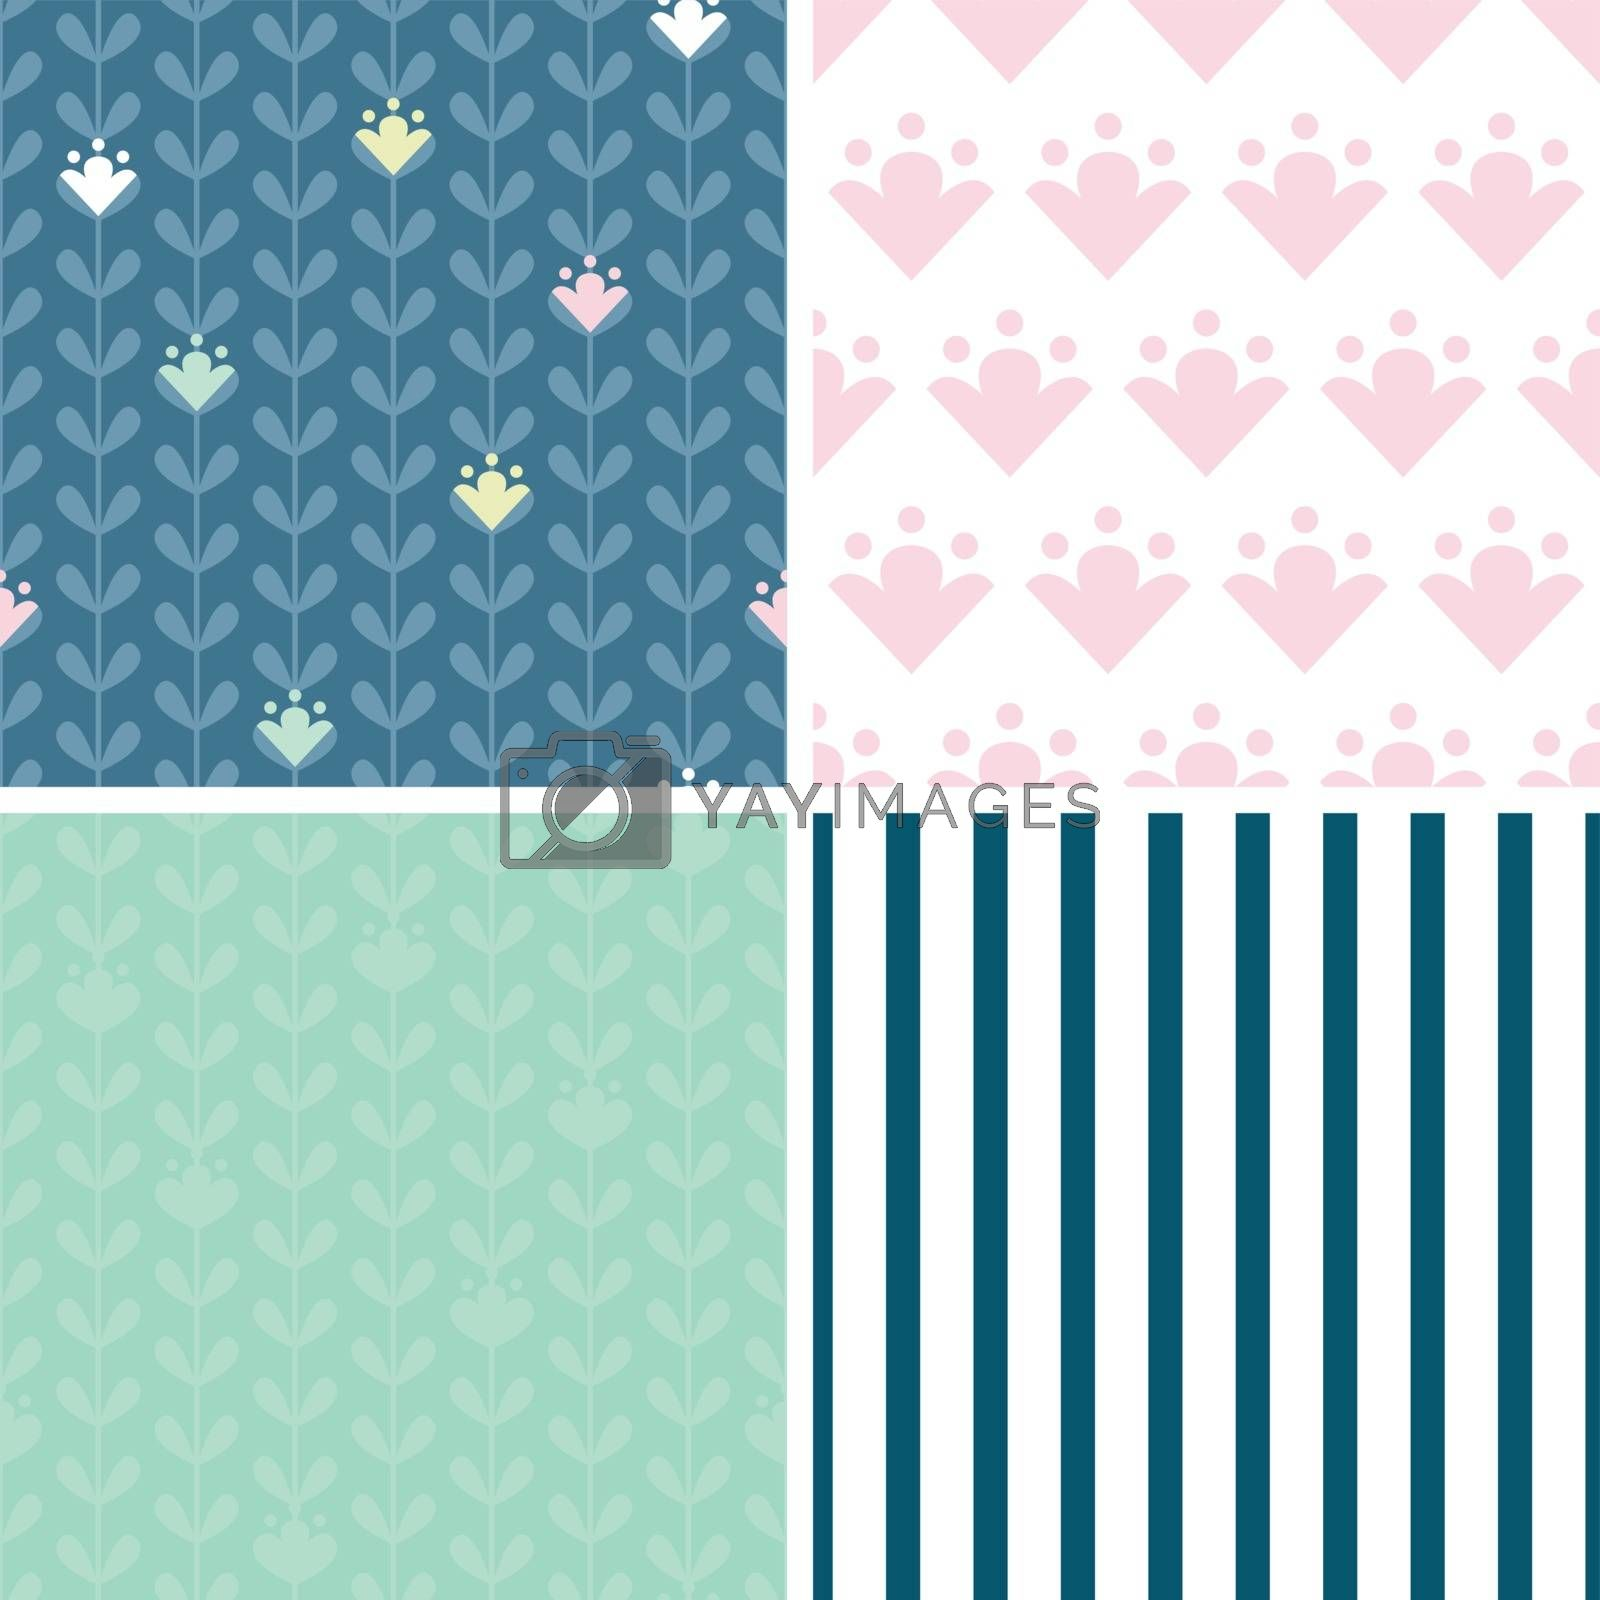 Vector blloming vines stripes set of four marching repeat patterns graphic design